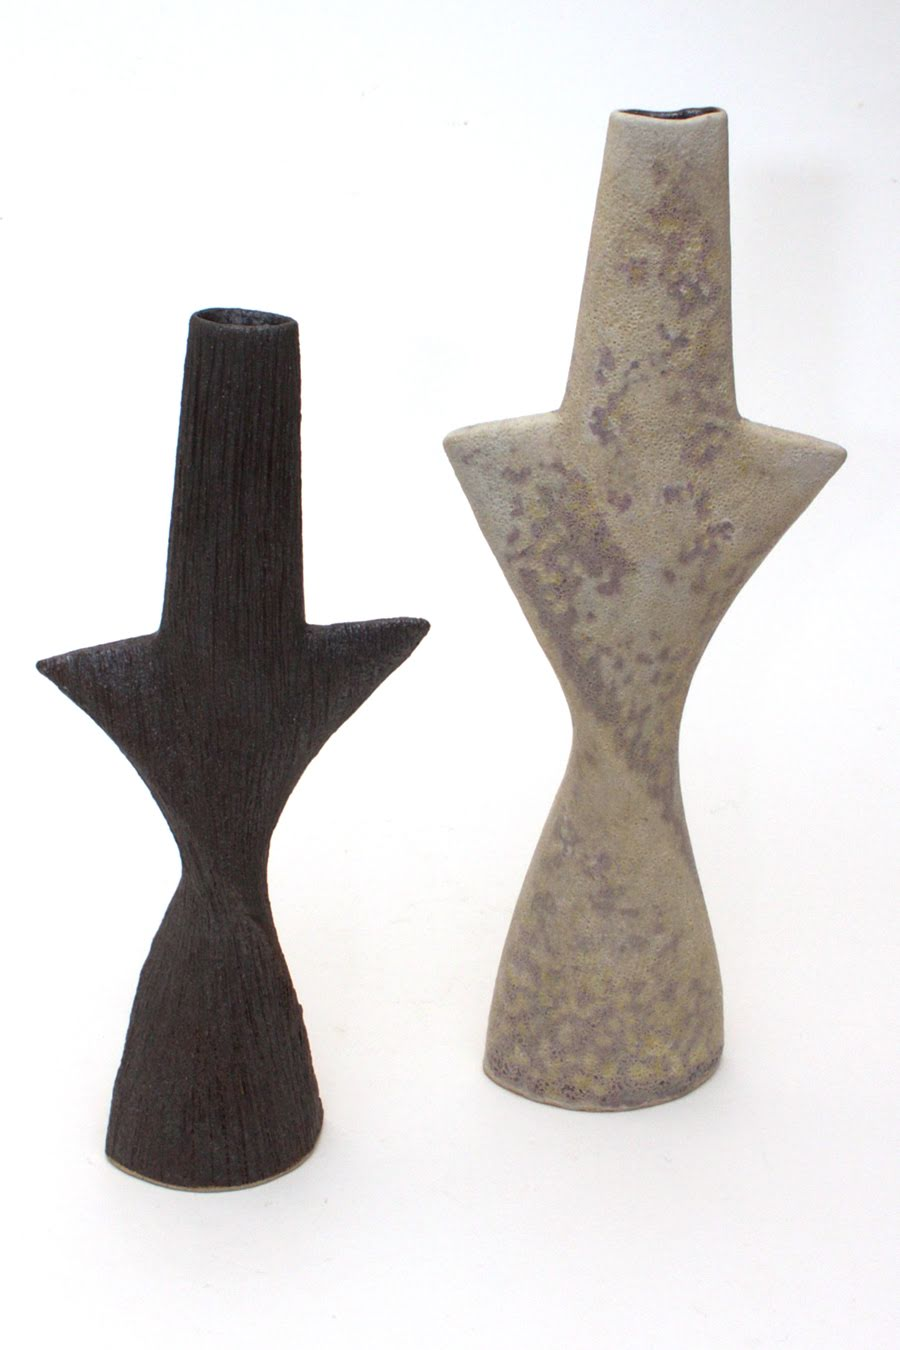 Pair of ceramic twisting totemic forms by Chris Carter